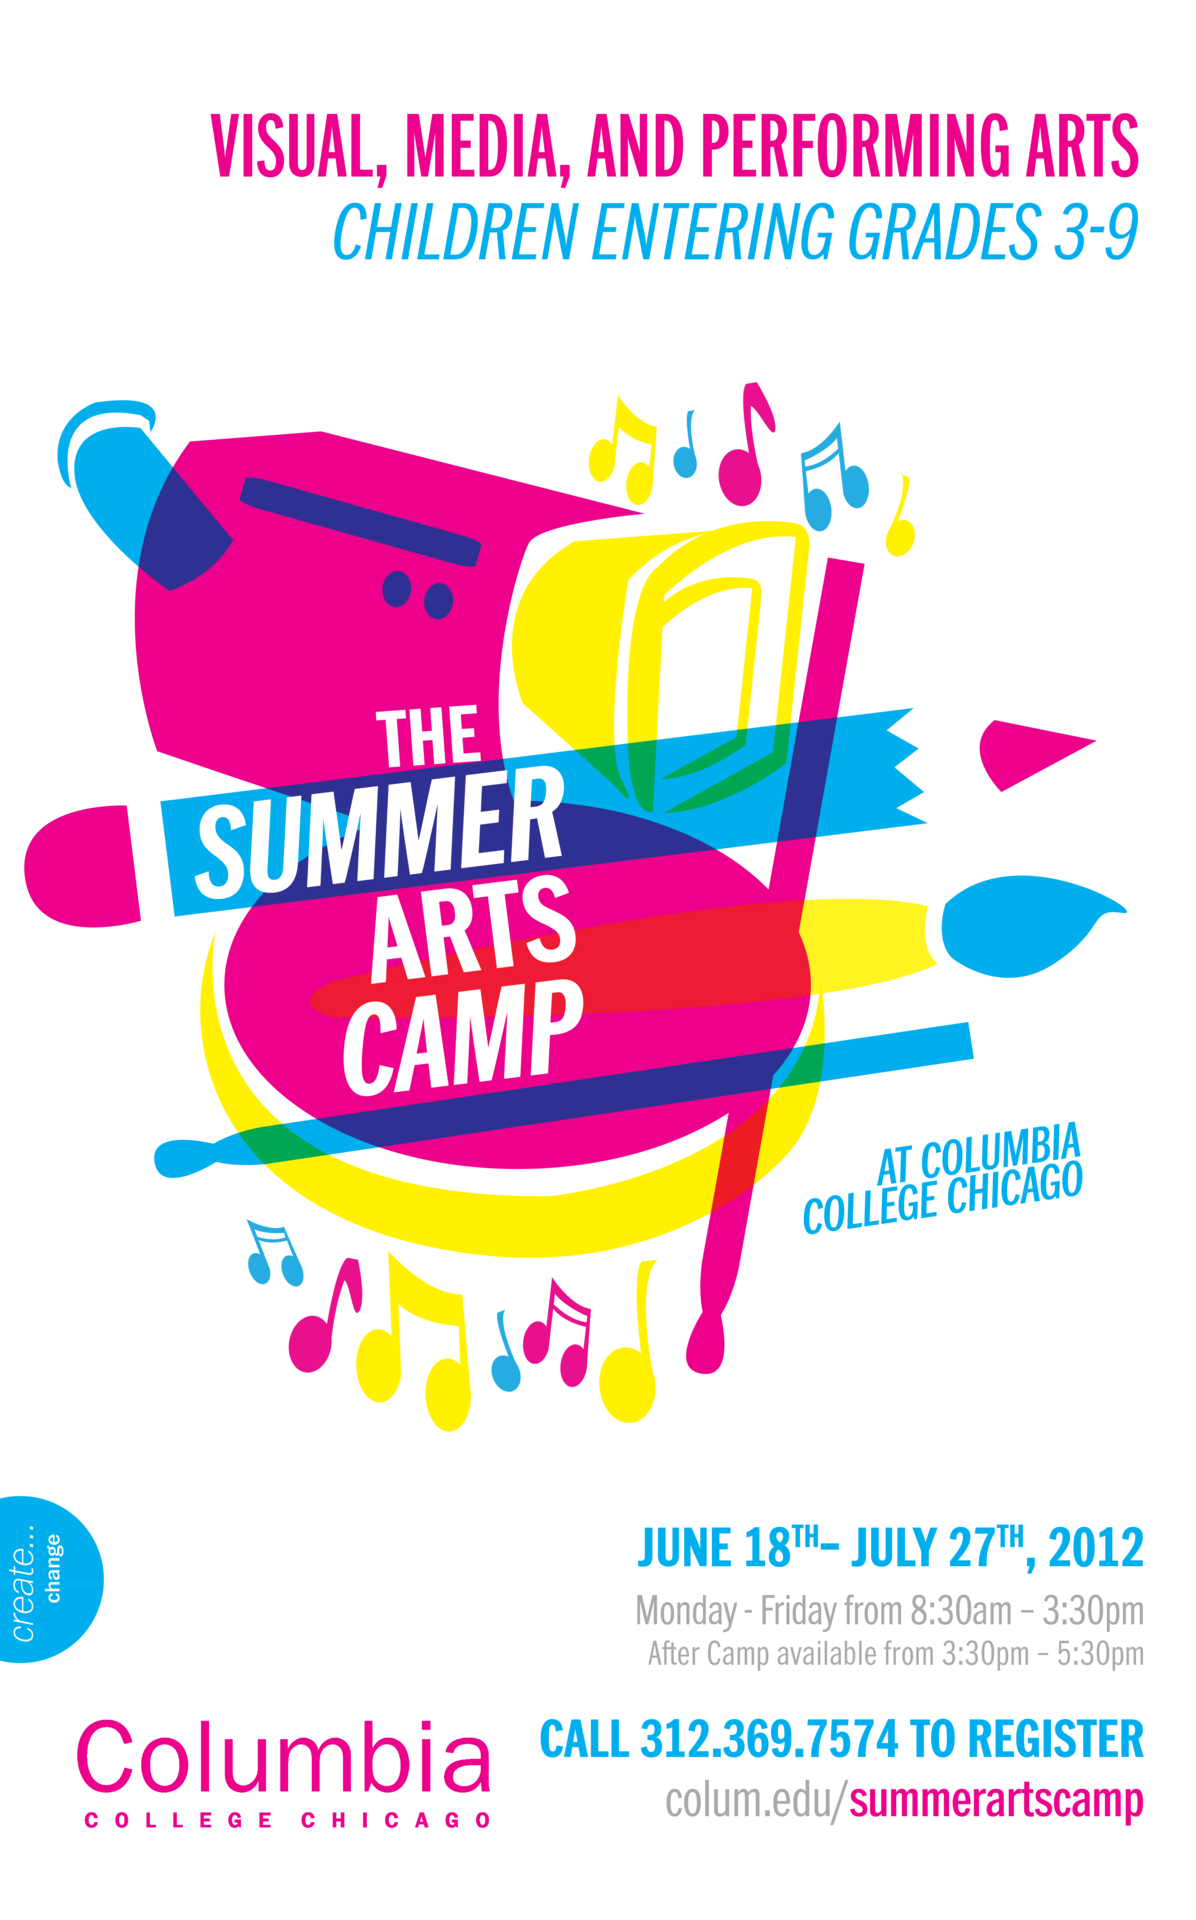 COLUMBIA COLLEGE SUMMER ARTS CAMP POSTER 11x17